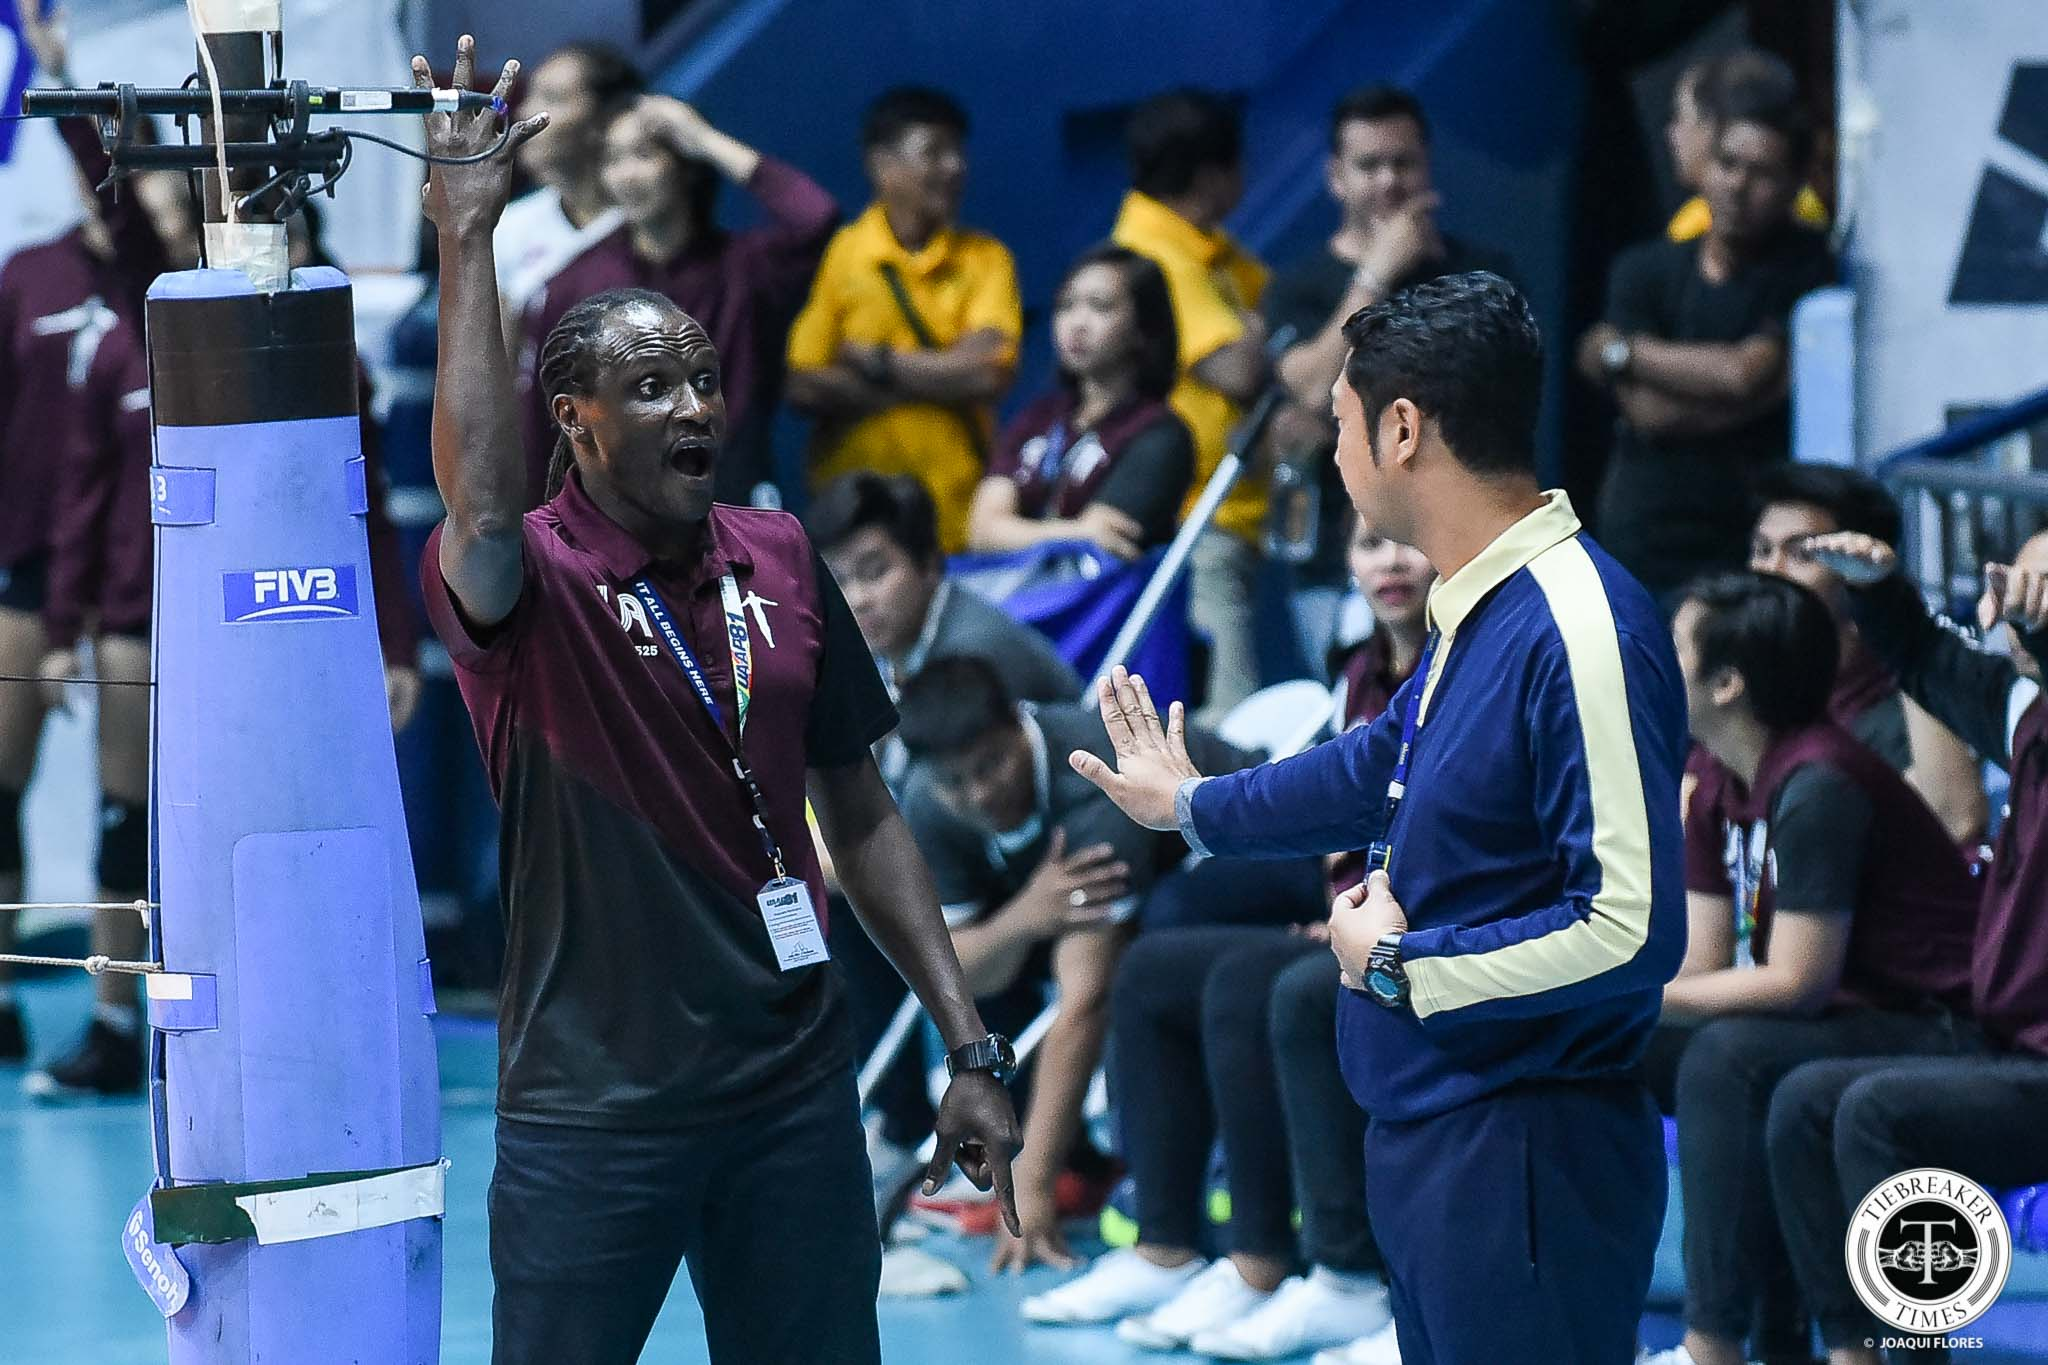 Tiebreaker Times Estranero, UP Lady Maroons keeping frustrations at bay as Final Four chance slips News UAAP UP Volleyball  UP Women's Volleyball UAAP Season 81 Women's Volleyball UAAP Season 81 Godfrey Okumu Ayel Estranero